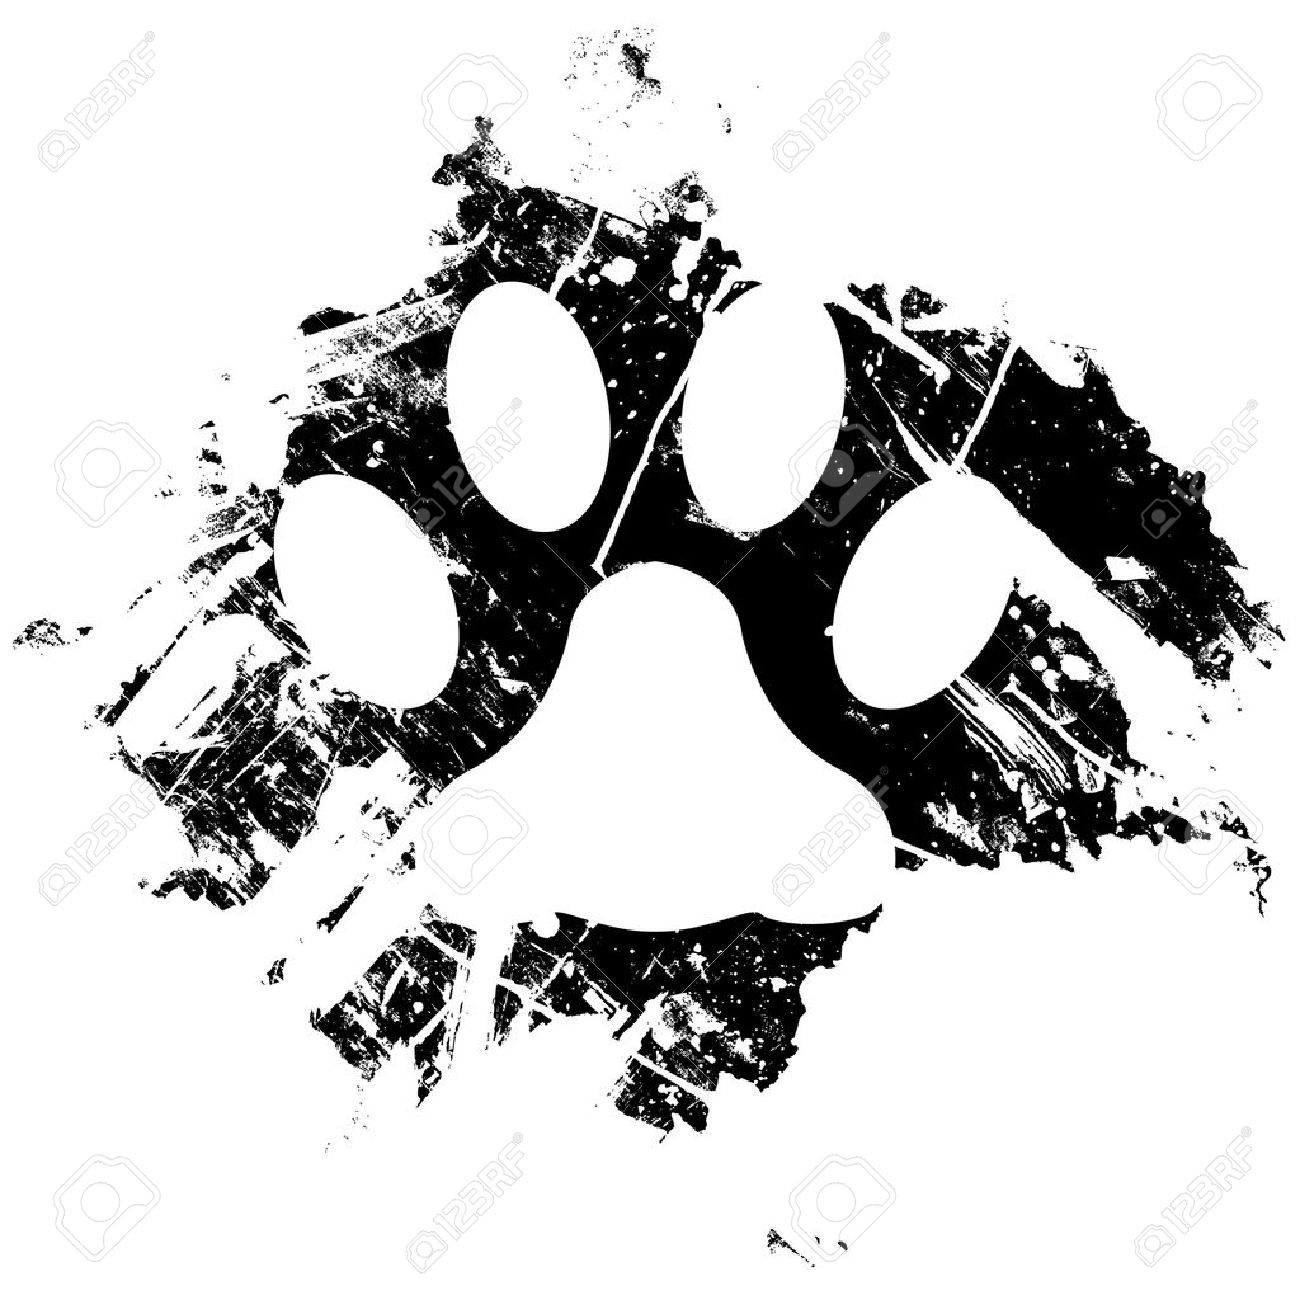 Grunge pet or cat paw print  Can be used as a background or as